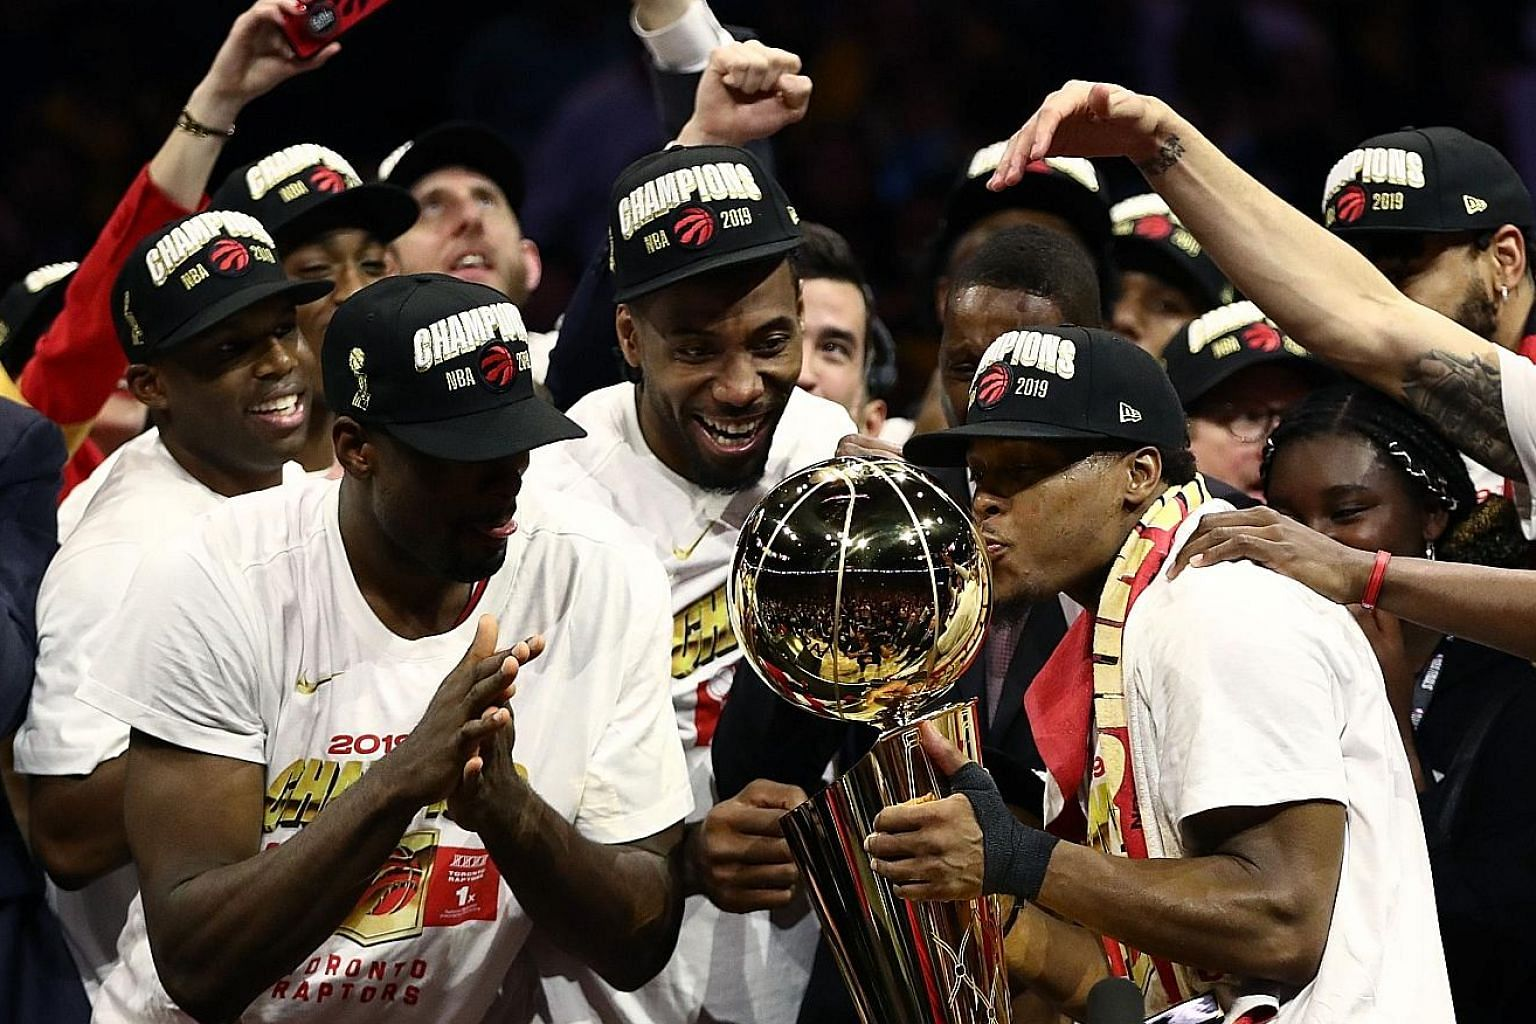 The Toronto Raptors celebrate with the Larry O'Brien Championship Trophy after defeating two-time defending champions Golden State Warriors 114-110 in Game Six for a 4-2 victory in the NBA Finals.